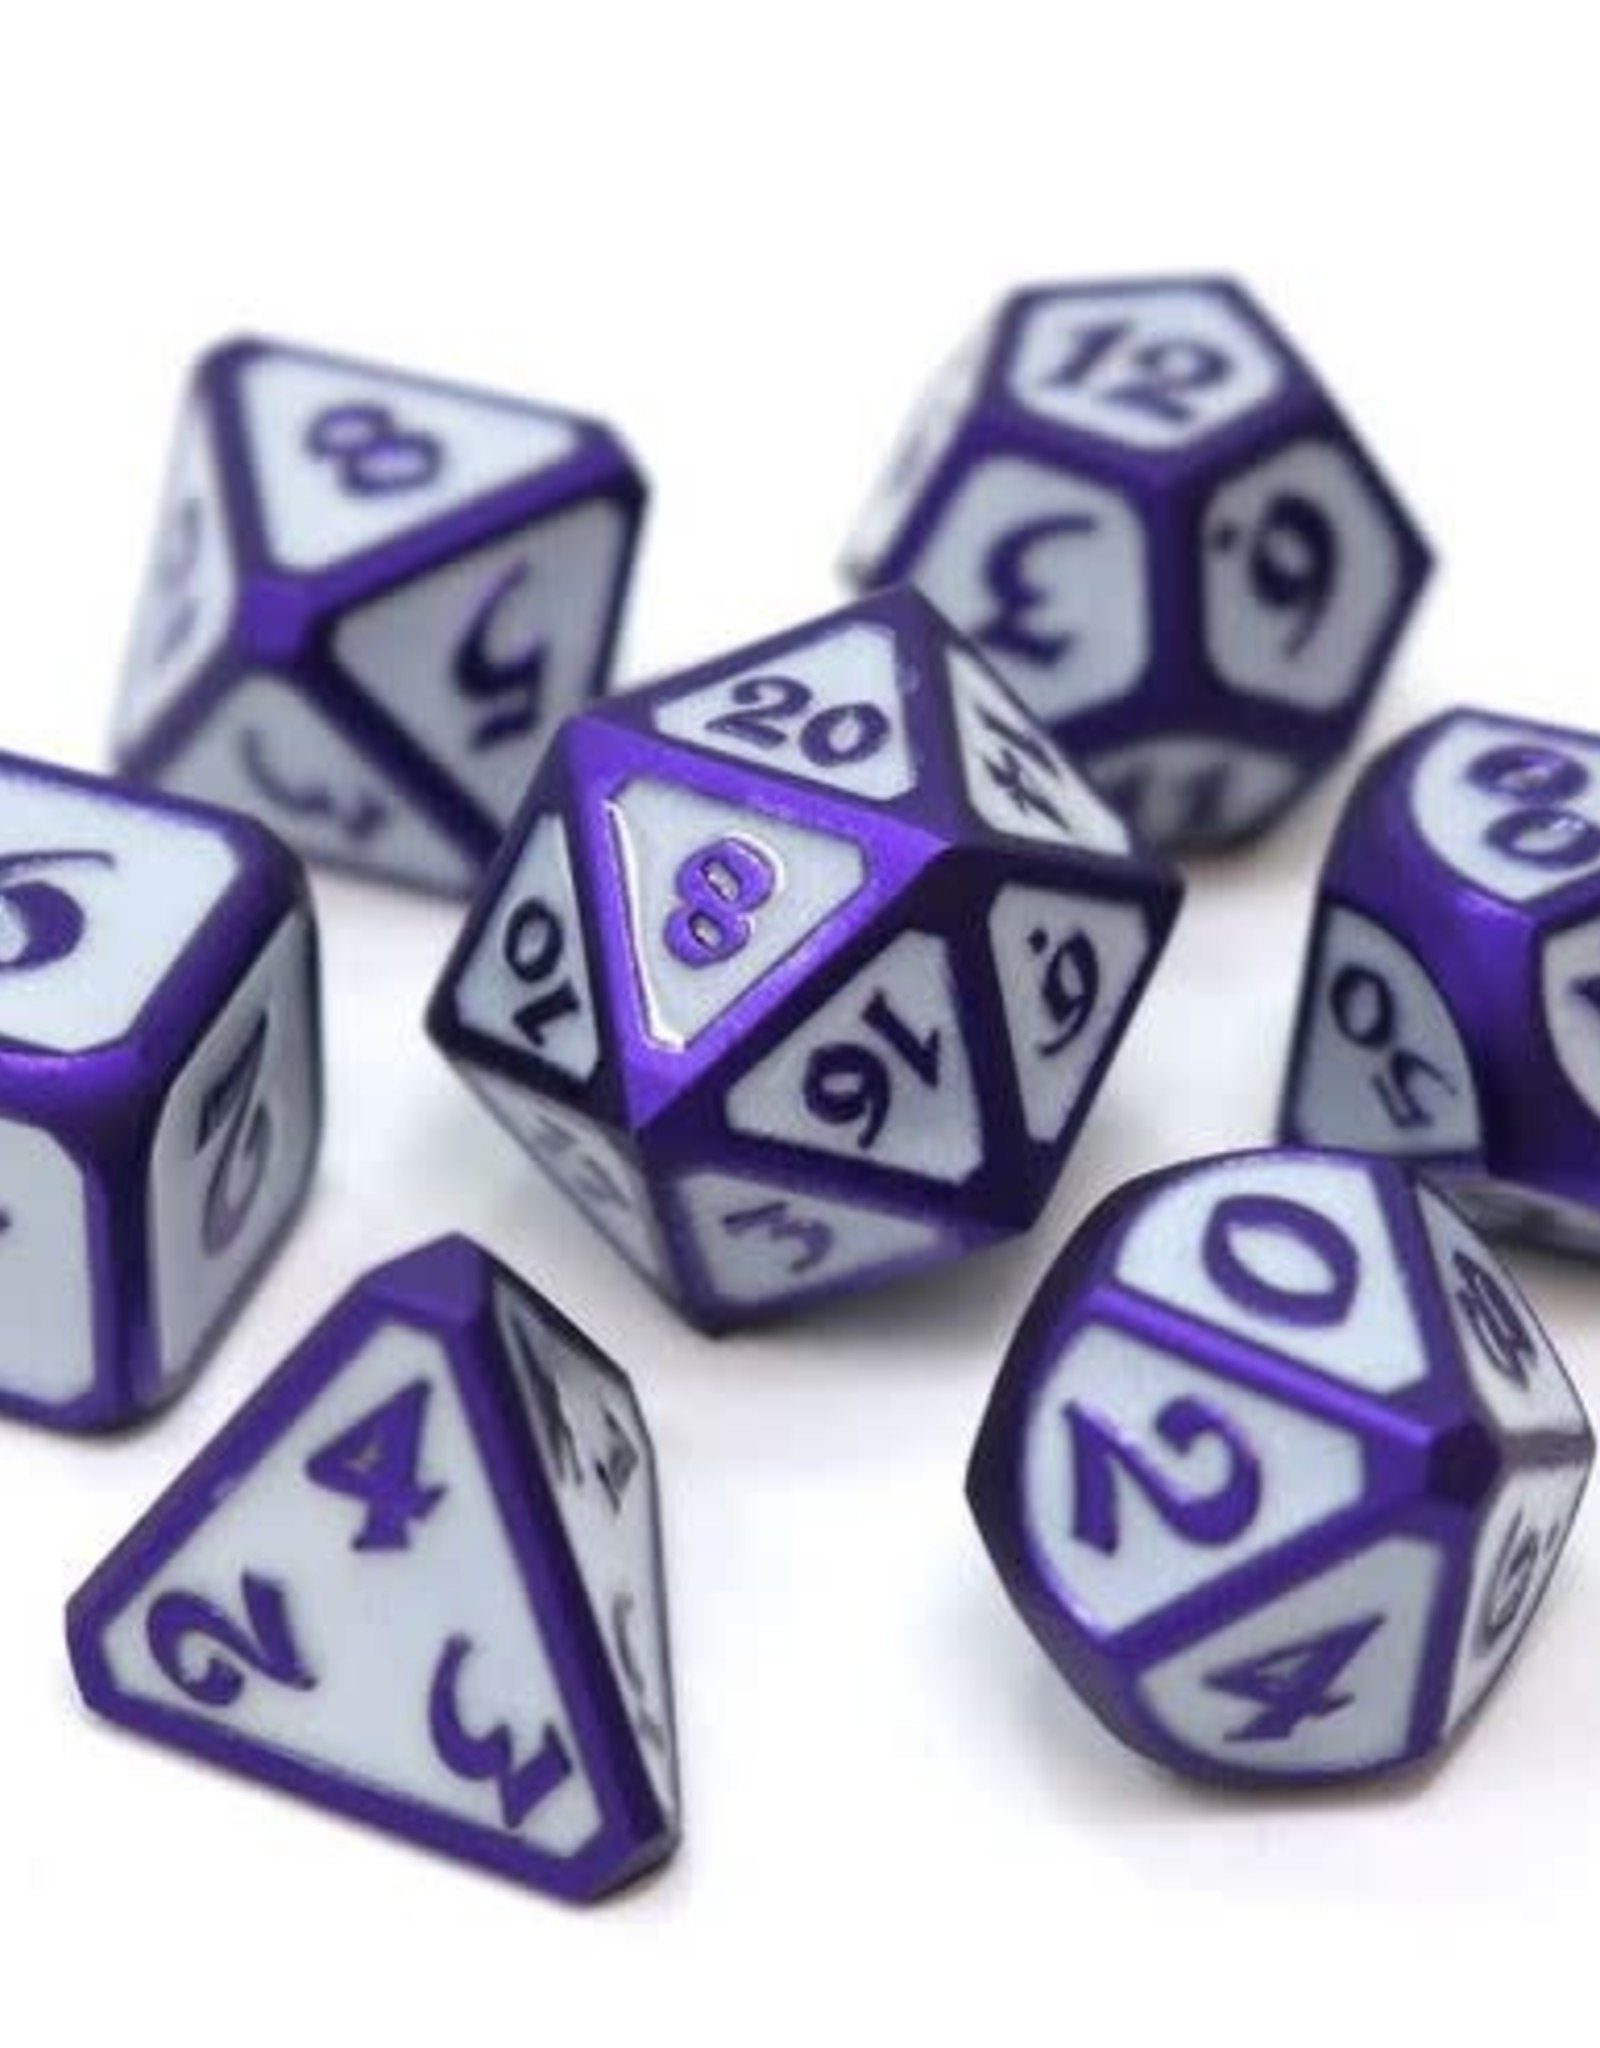 Die Hard Celestial Harbinger Poly 7 Metal Dice Set